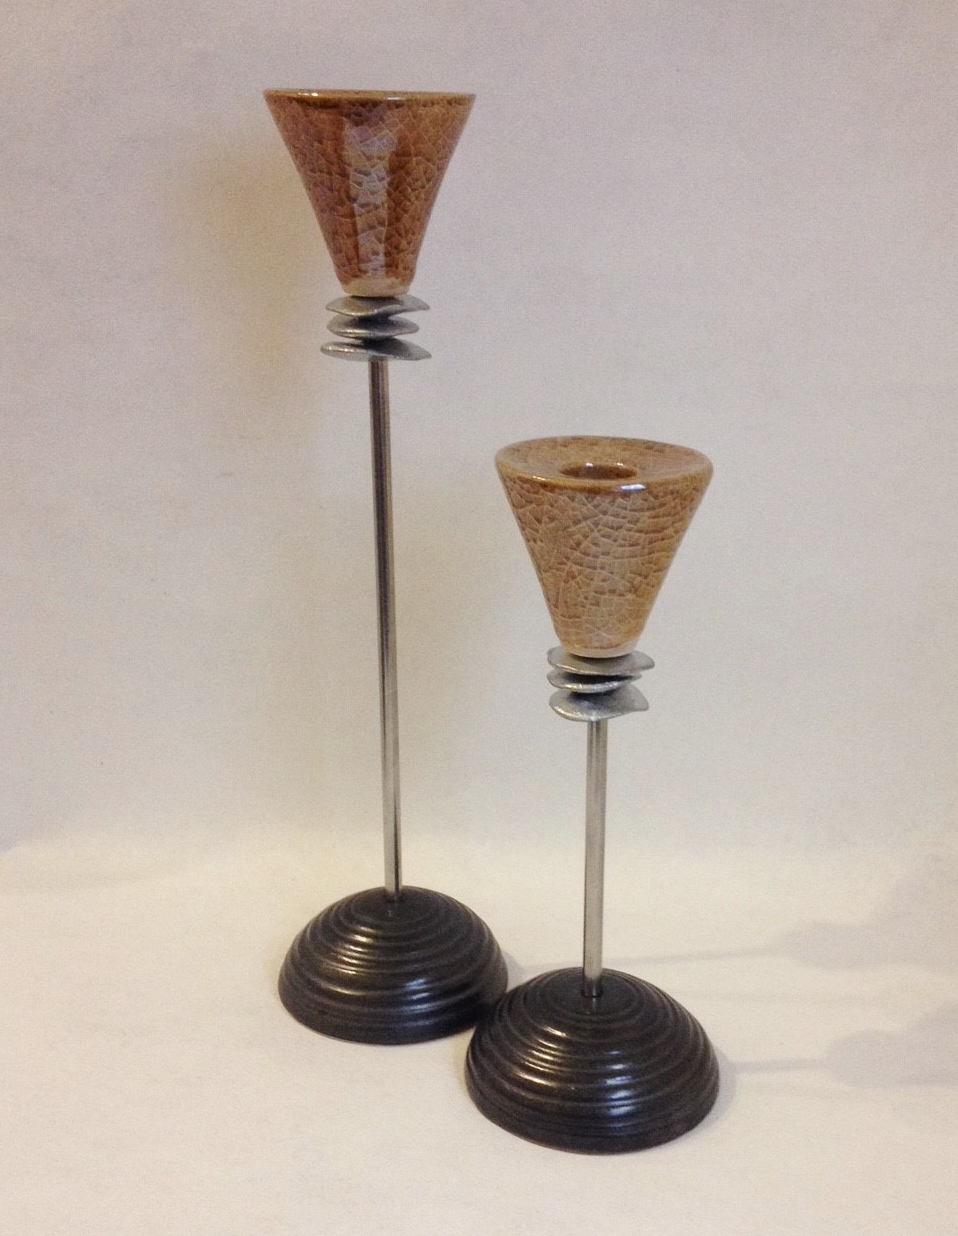 Primary image for Amber Ceramic Candle Holder Taper Candlestick Gold Crackle Stainless Steel Pair